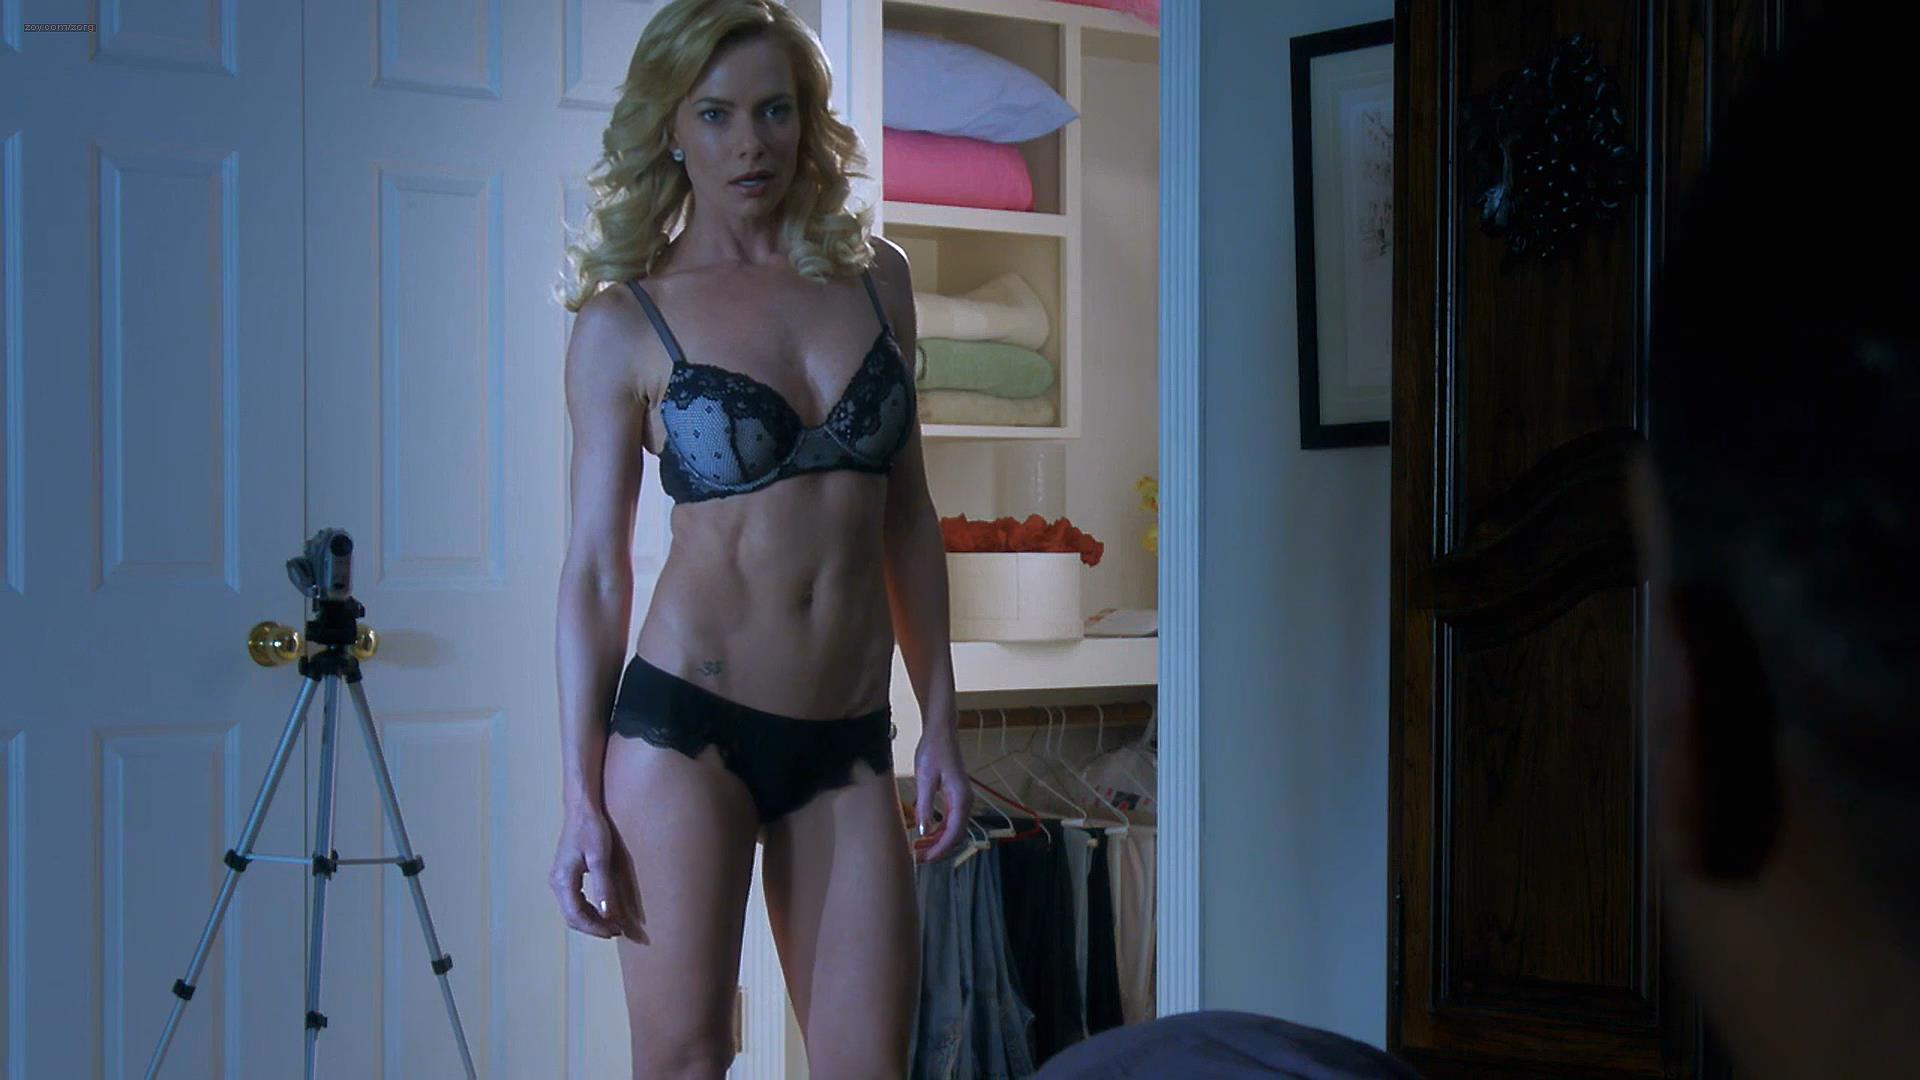 Jaime Pressly hot and sexy in lingerie - A Hunted House 2 (2014) hd1080p (4)